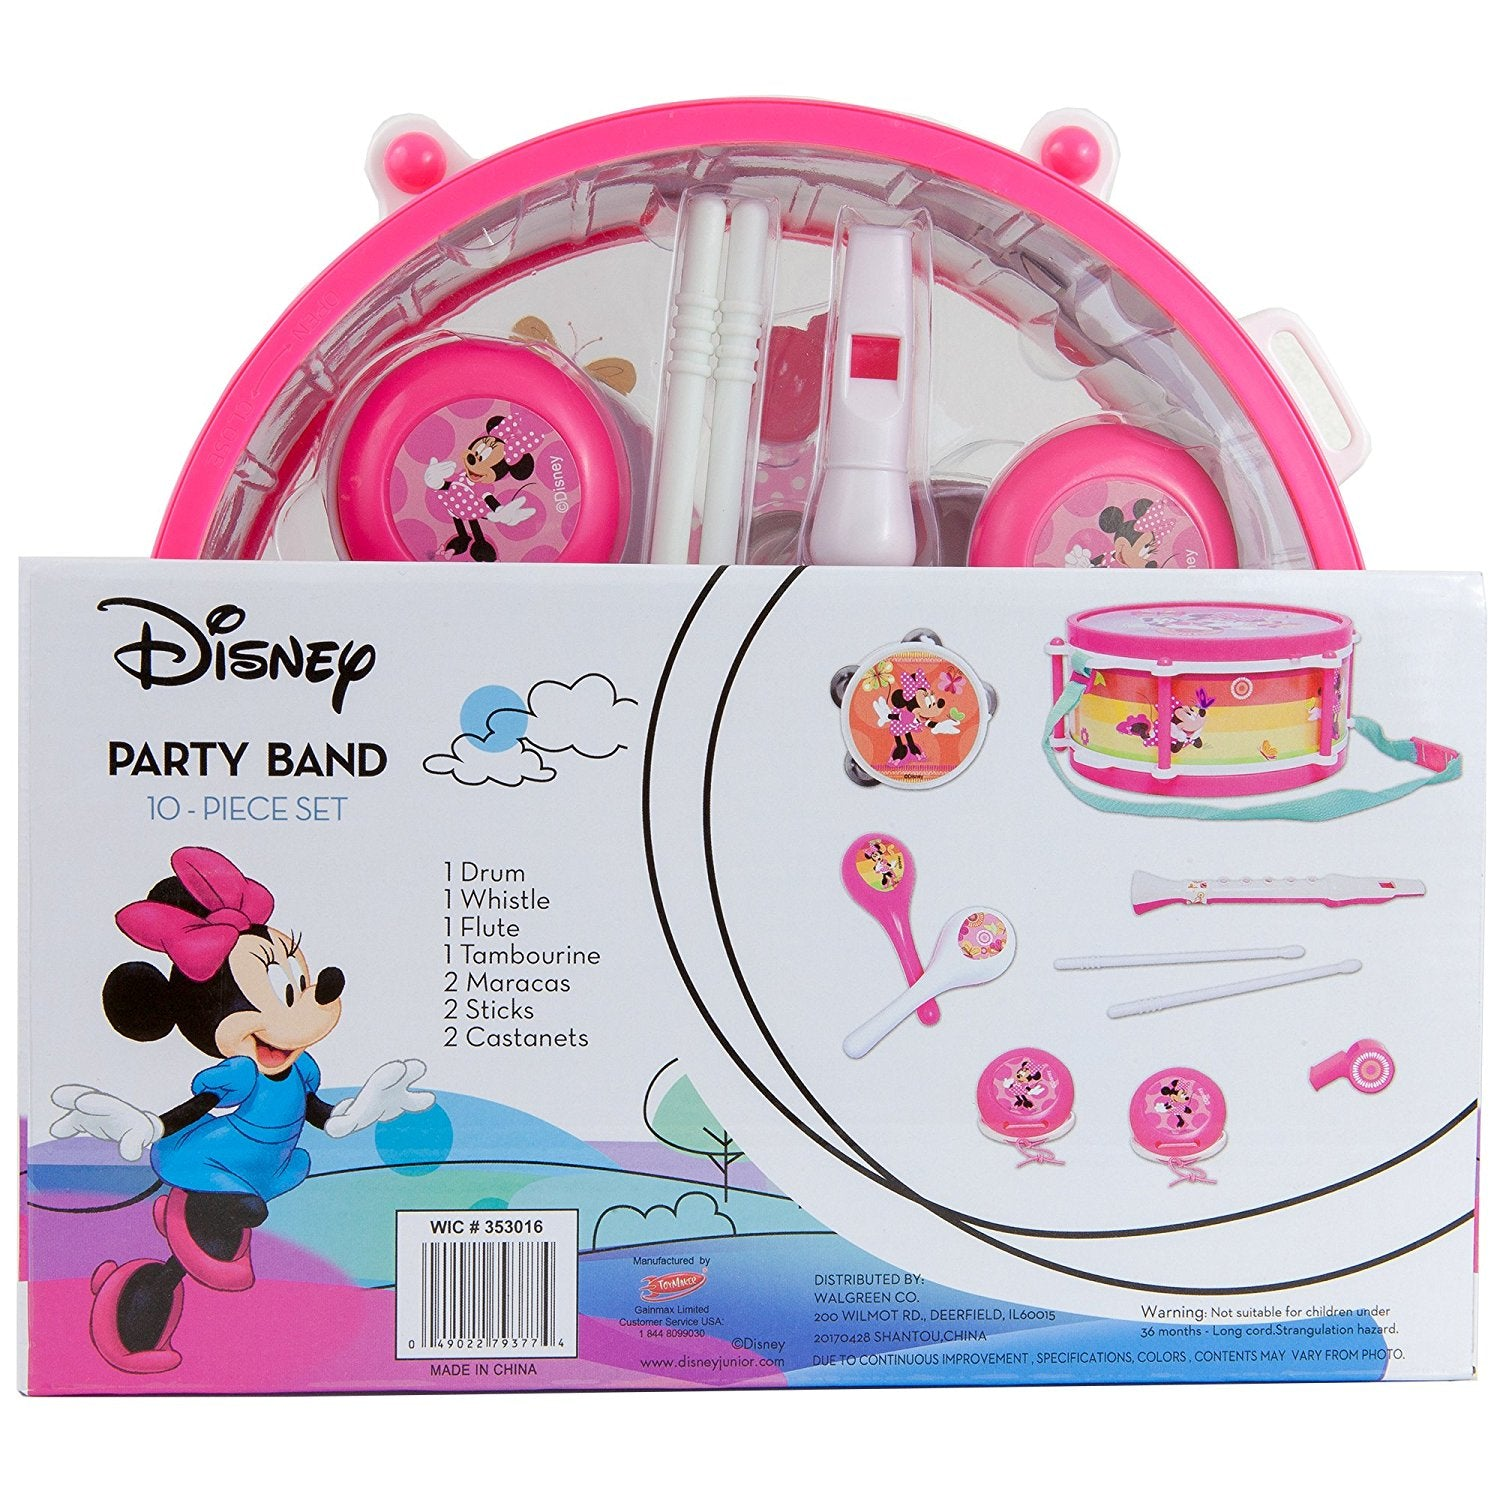 Disney Minnie Mouse Party Band 10 Piece Set Toyboxja